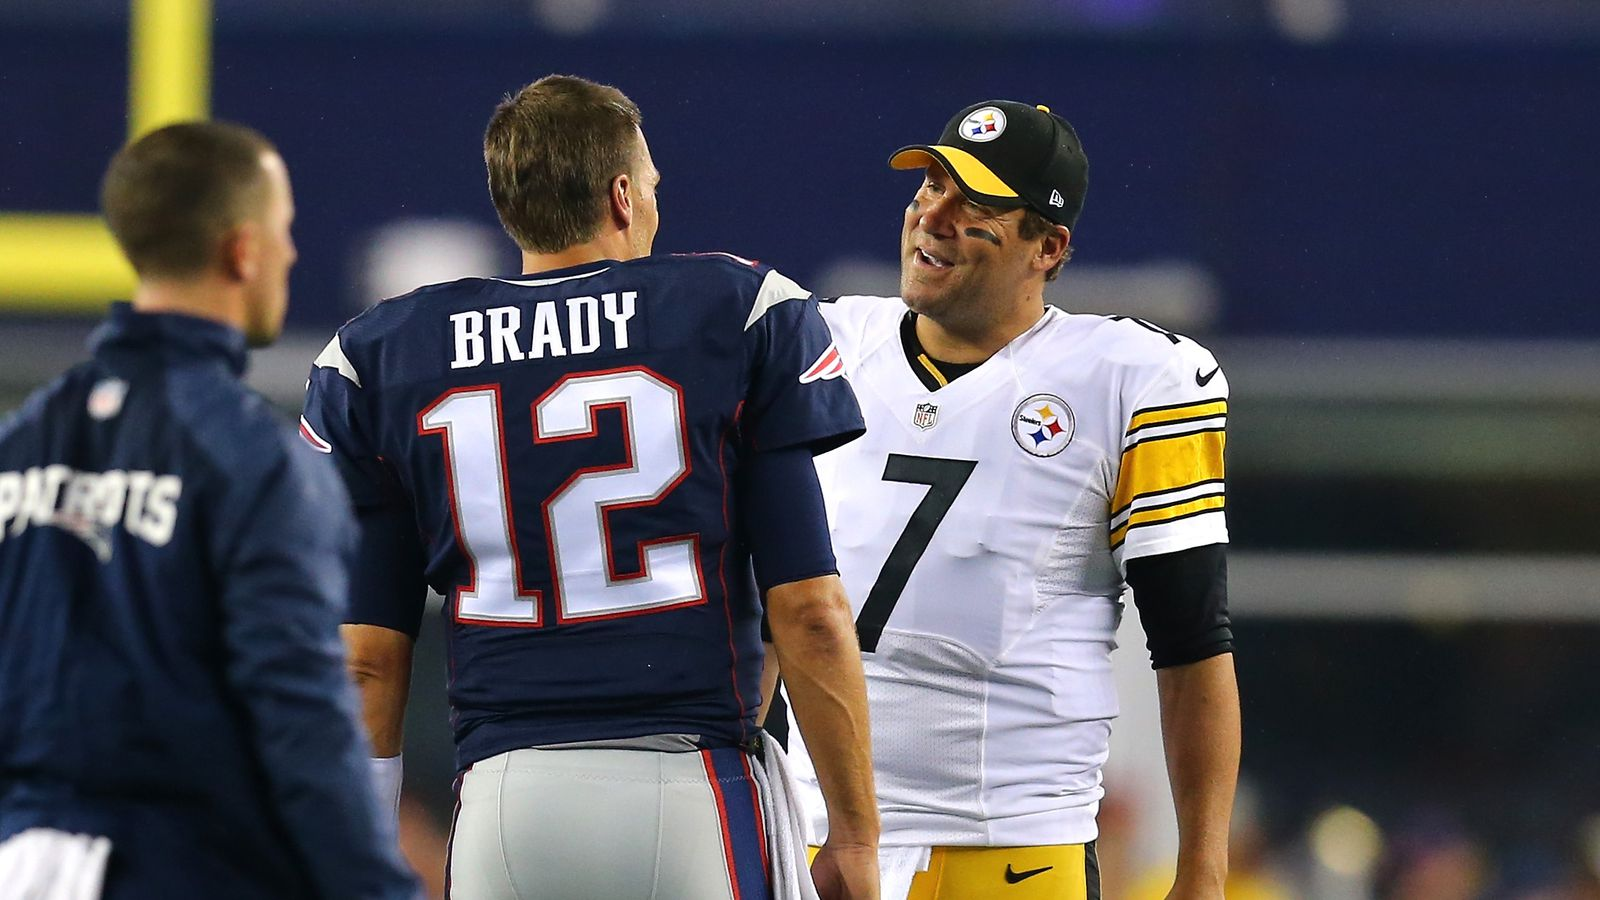 stream nfl patriots game free odds for nfl